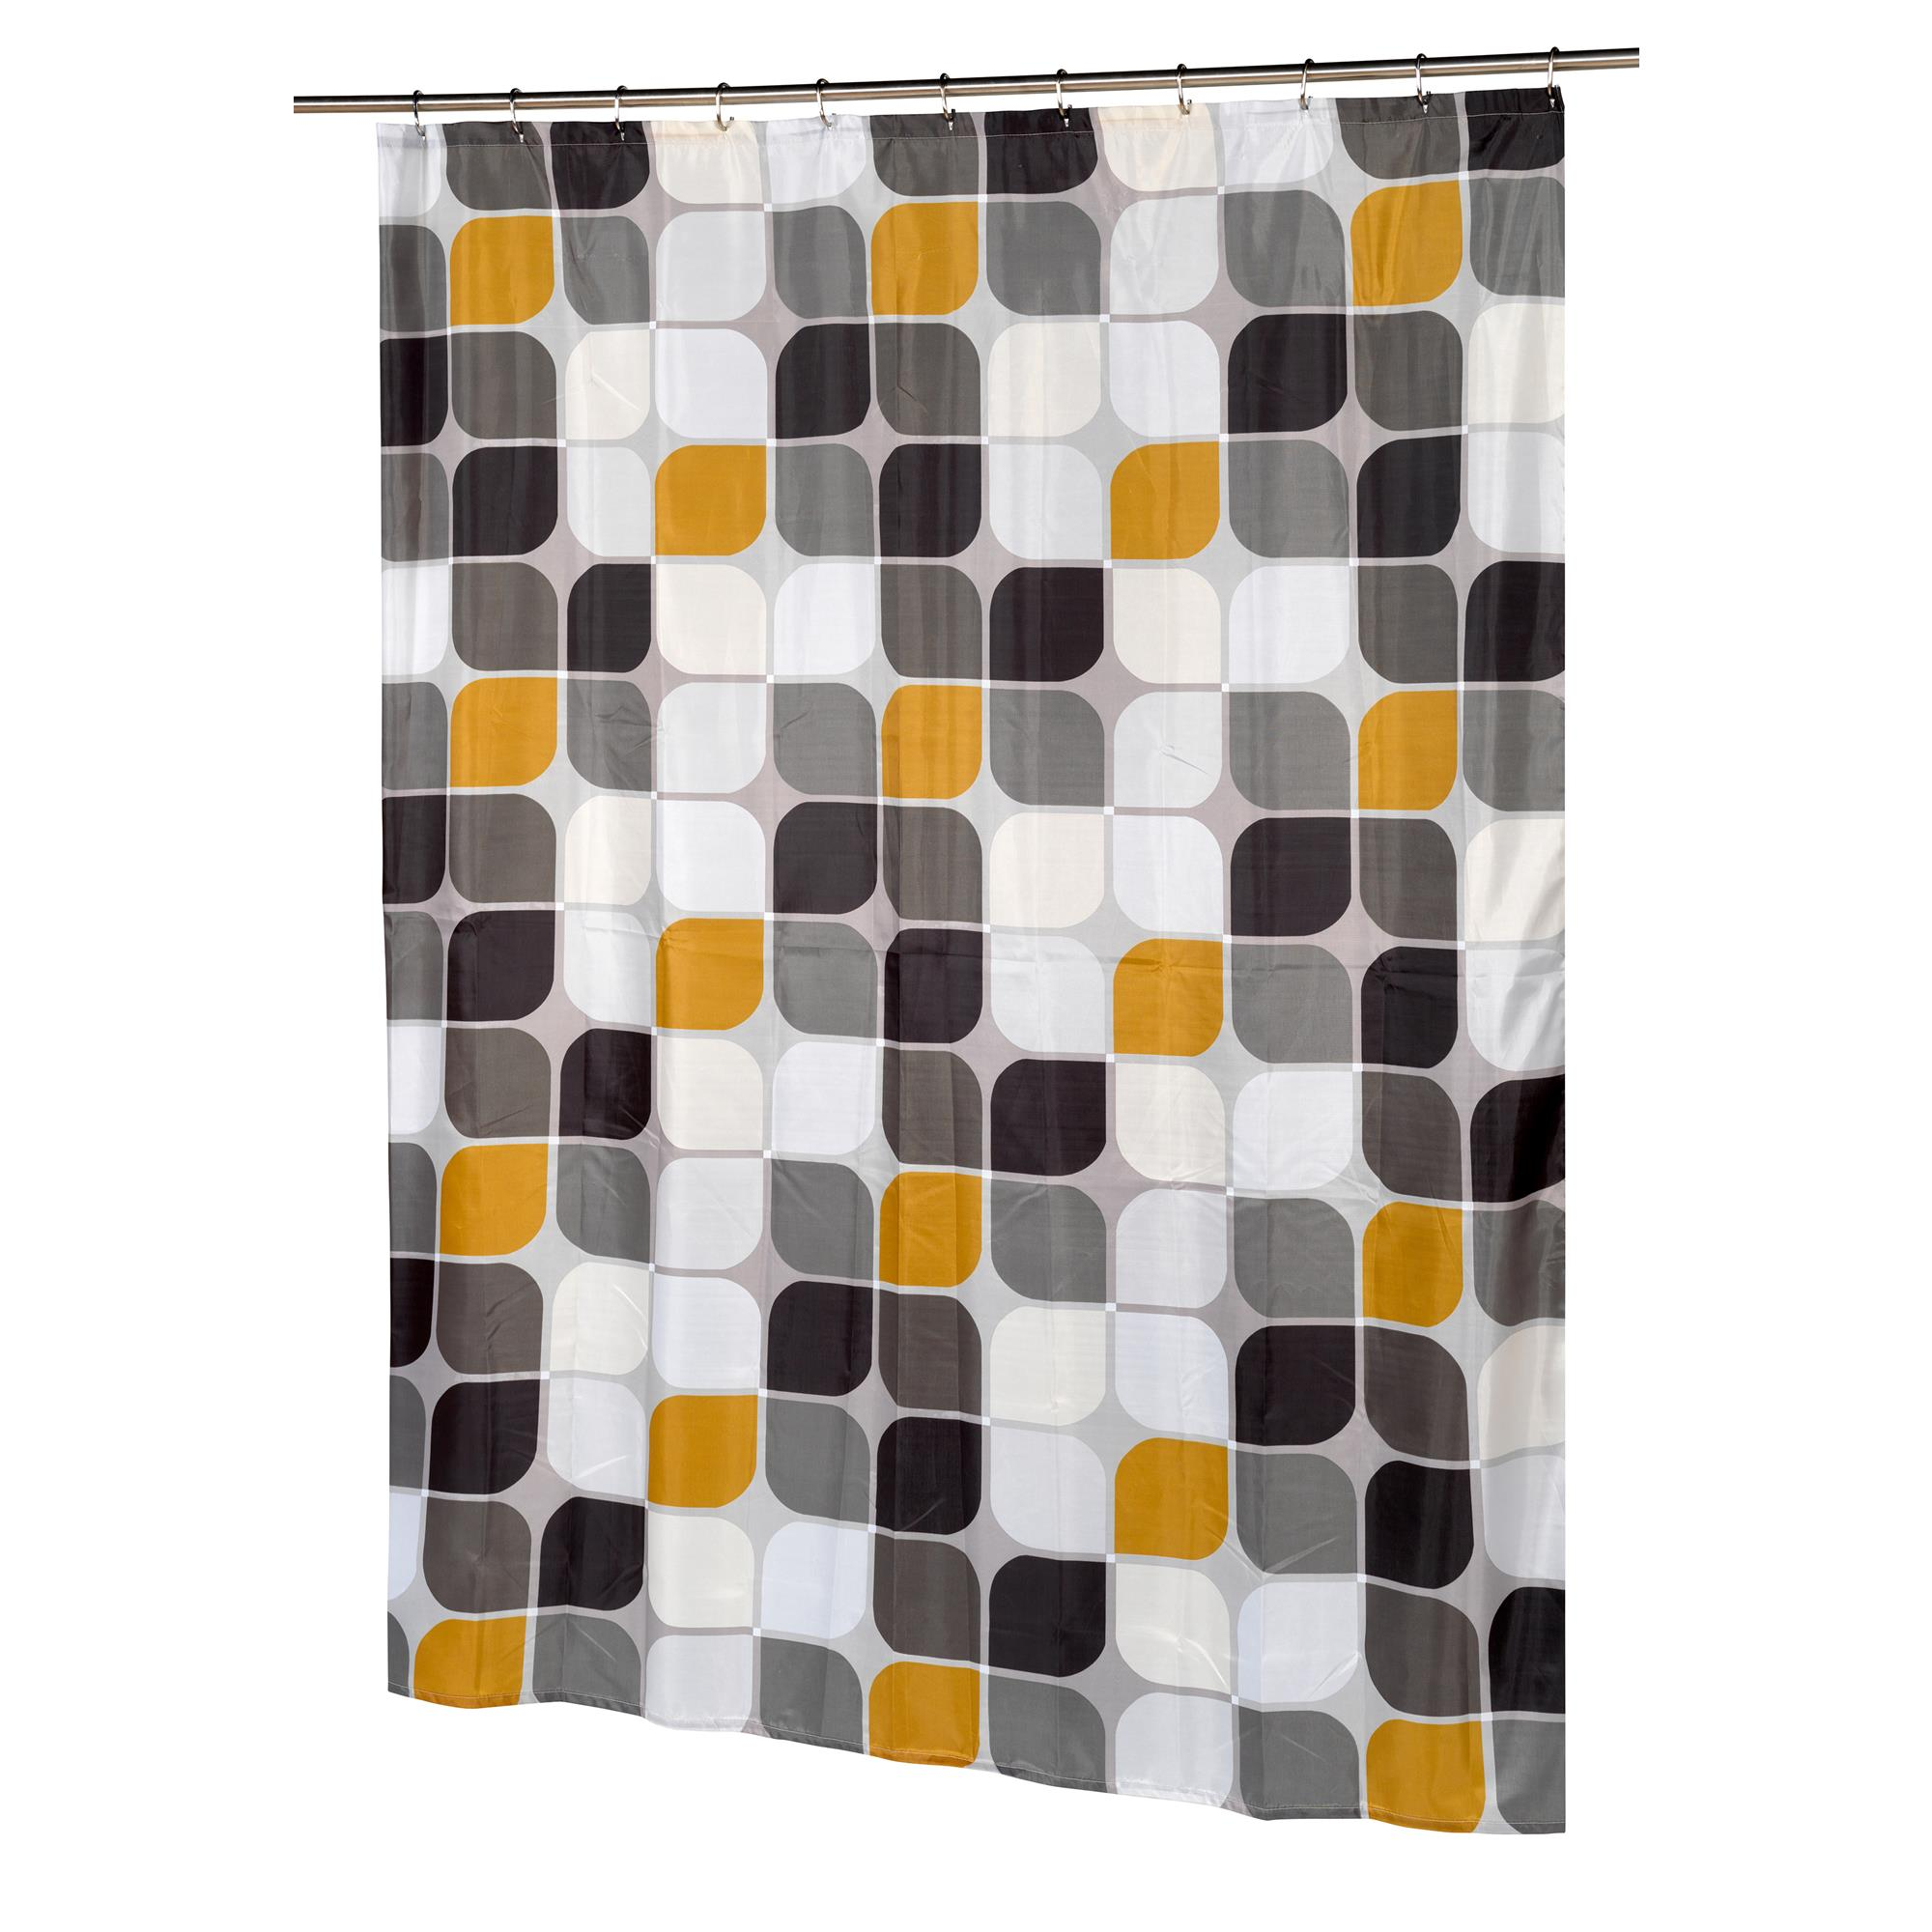 Carnation Home Metro Stall Size Fabric Shower Curtain 71821103515